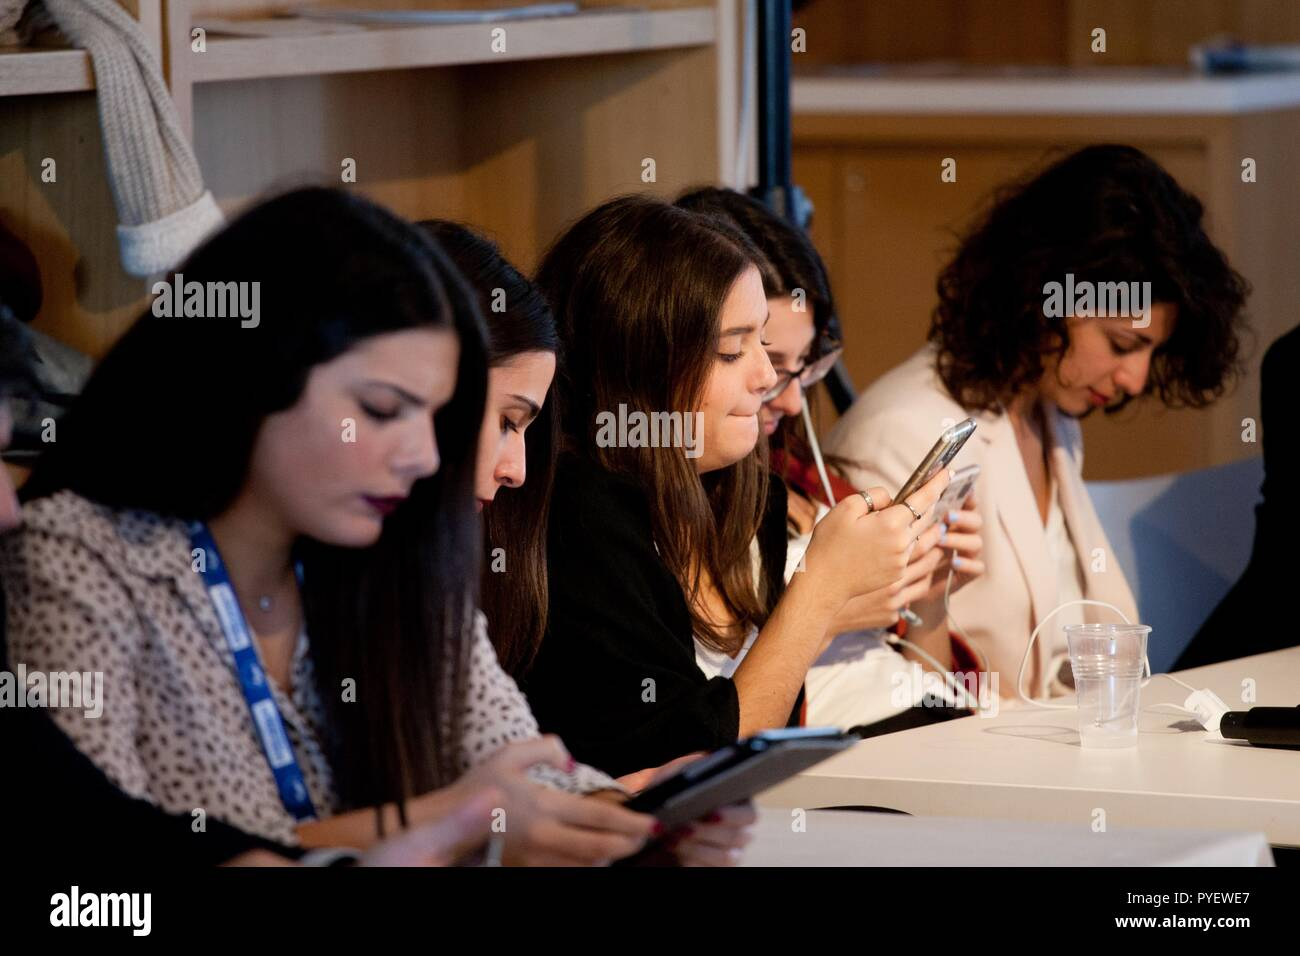 young girls  looking at their cell phones - Stock Image